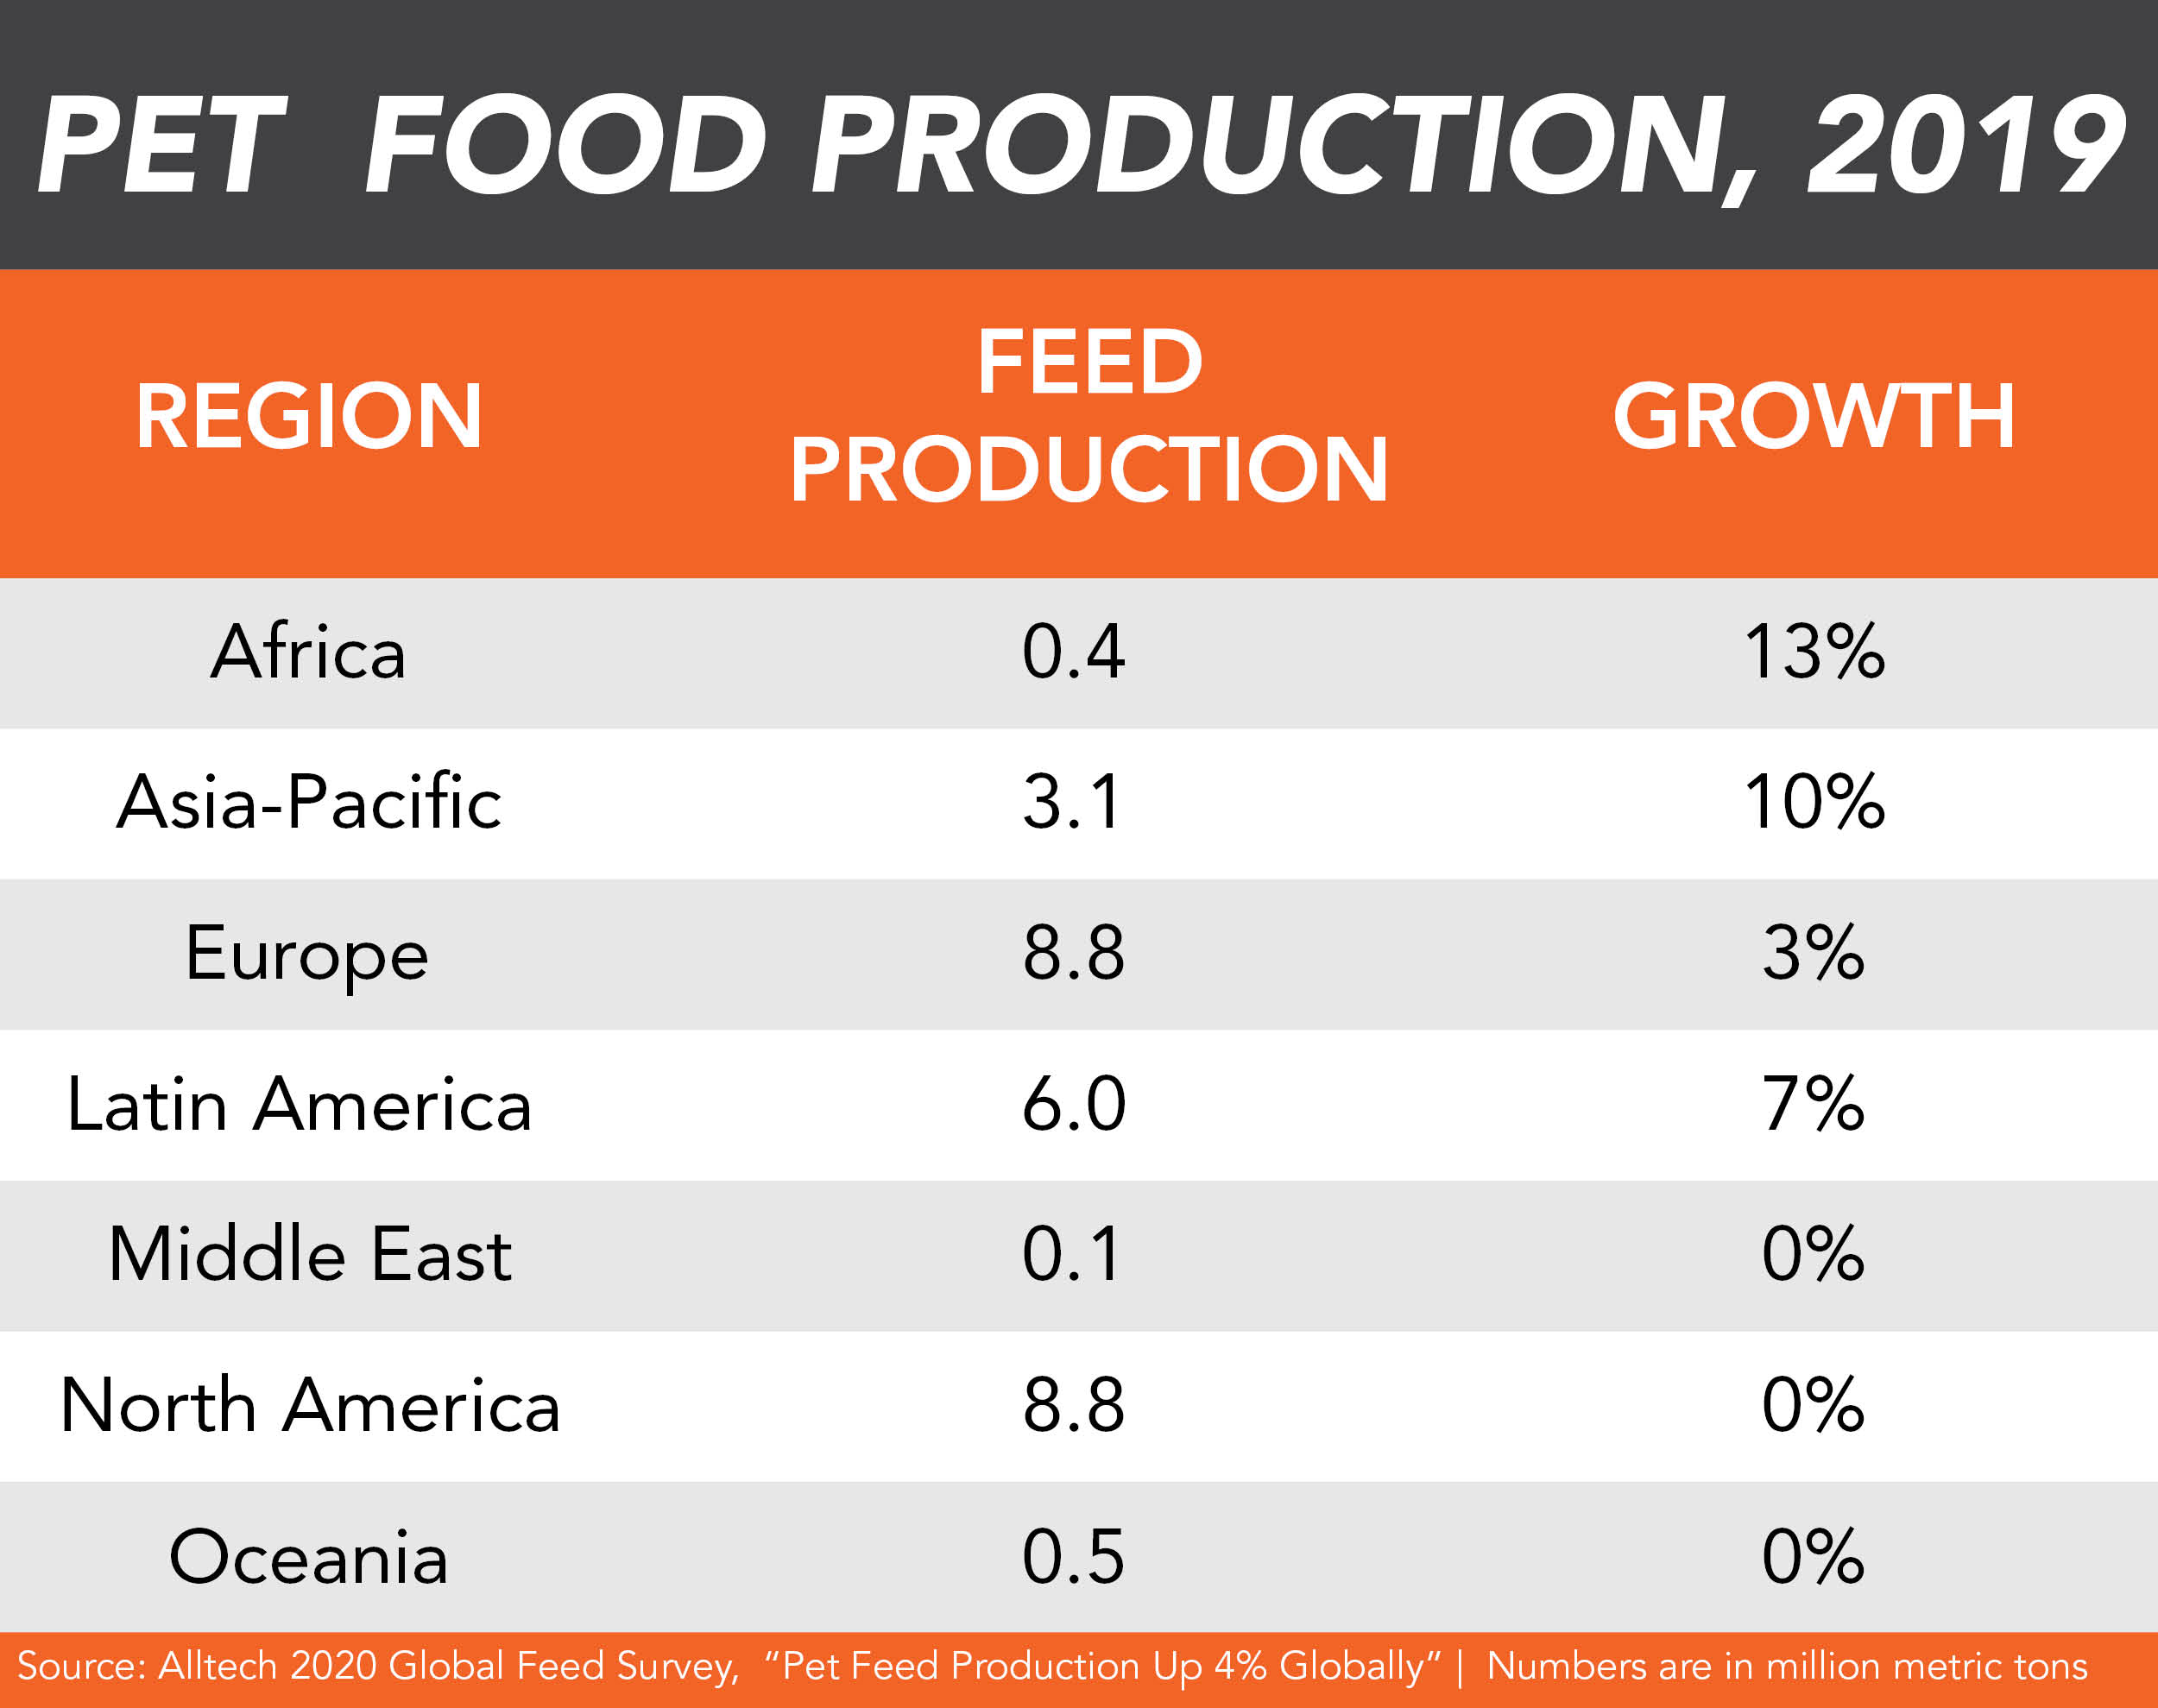 Pet food production by region, Alltech 2020 Global Feed Survey